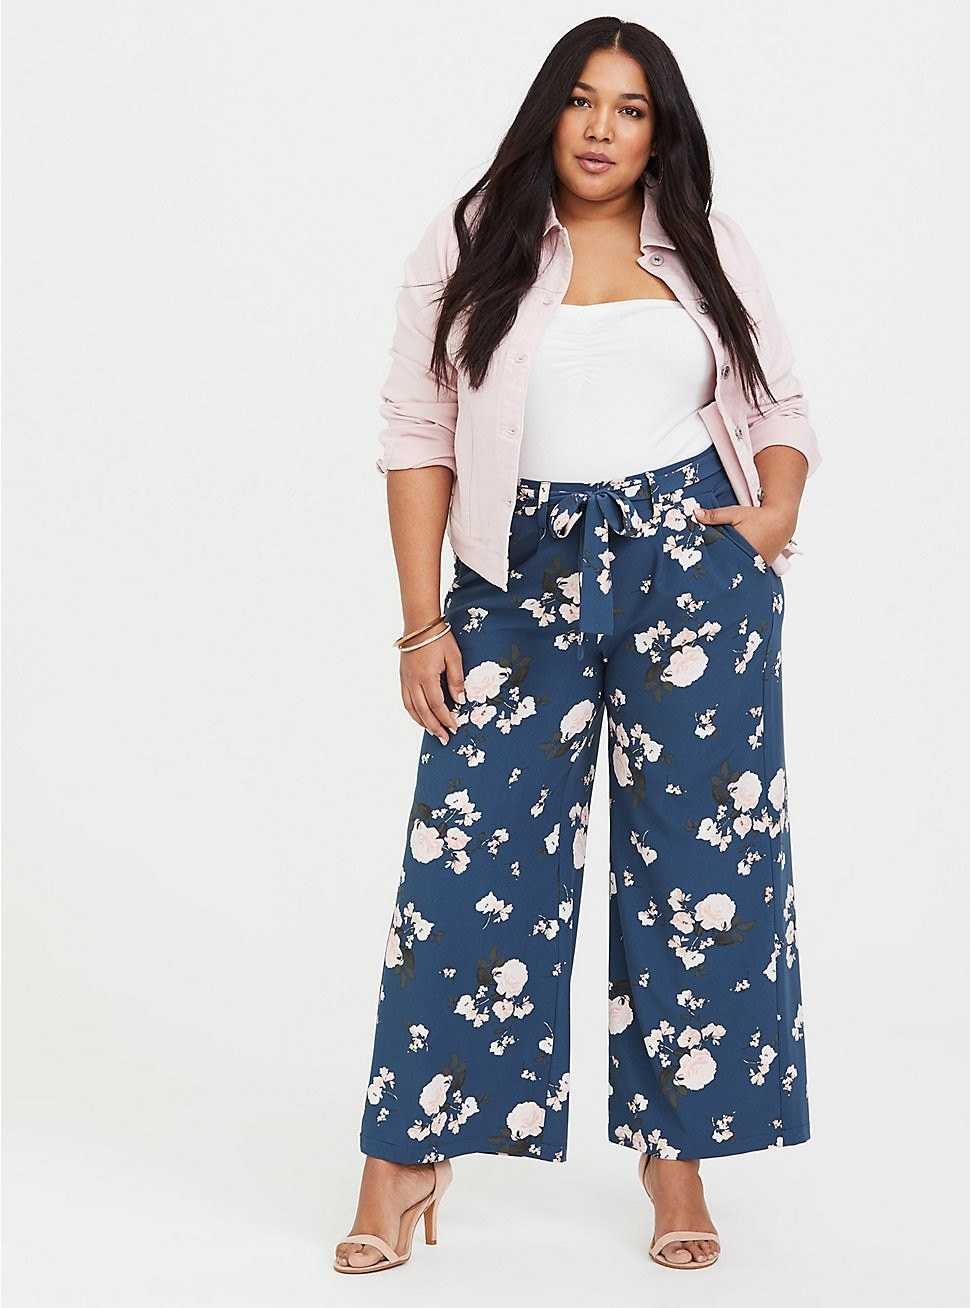 Get them from Torrid for $54.90 (available in sizes 10-30).